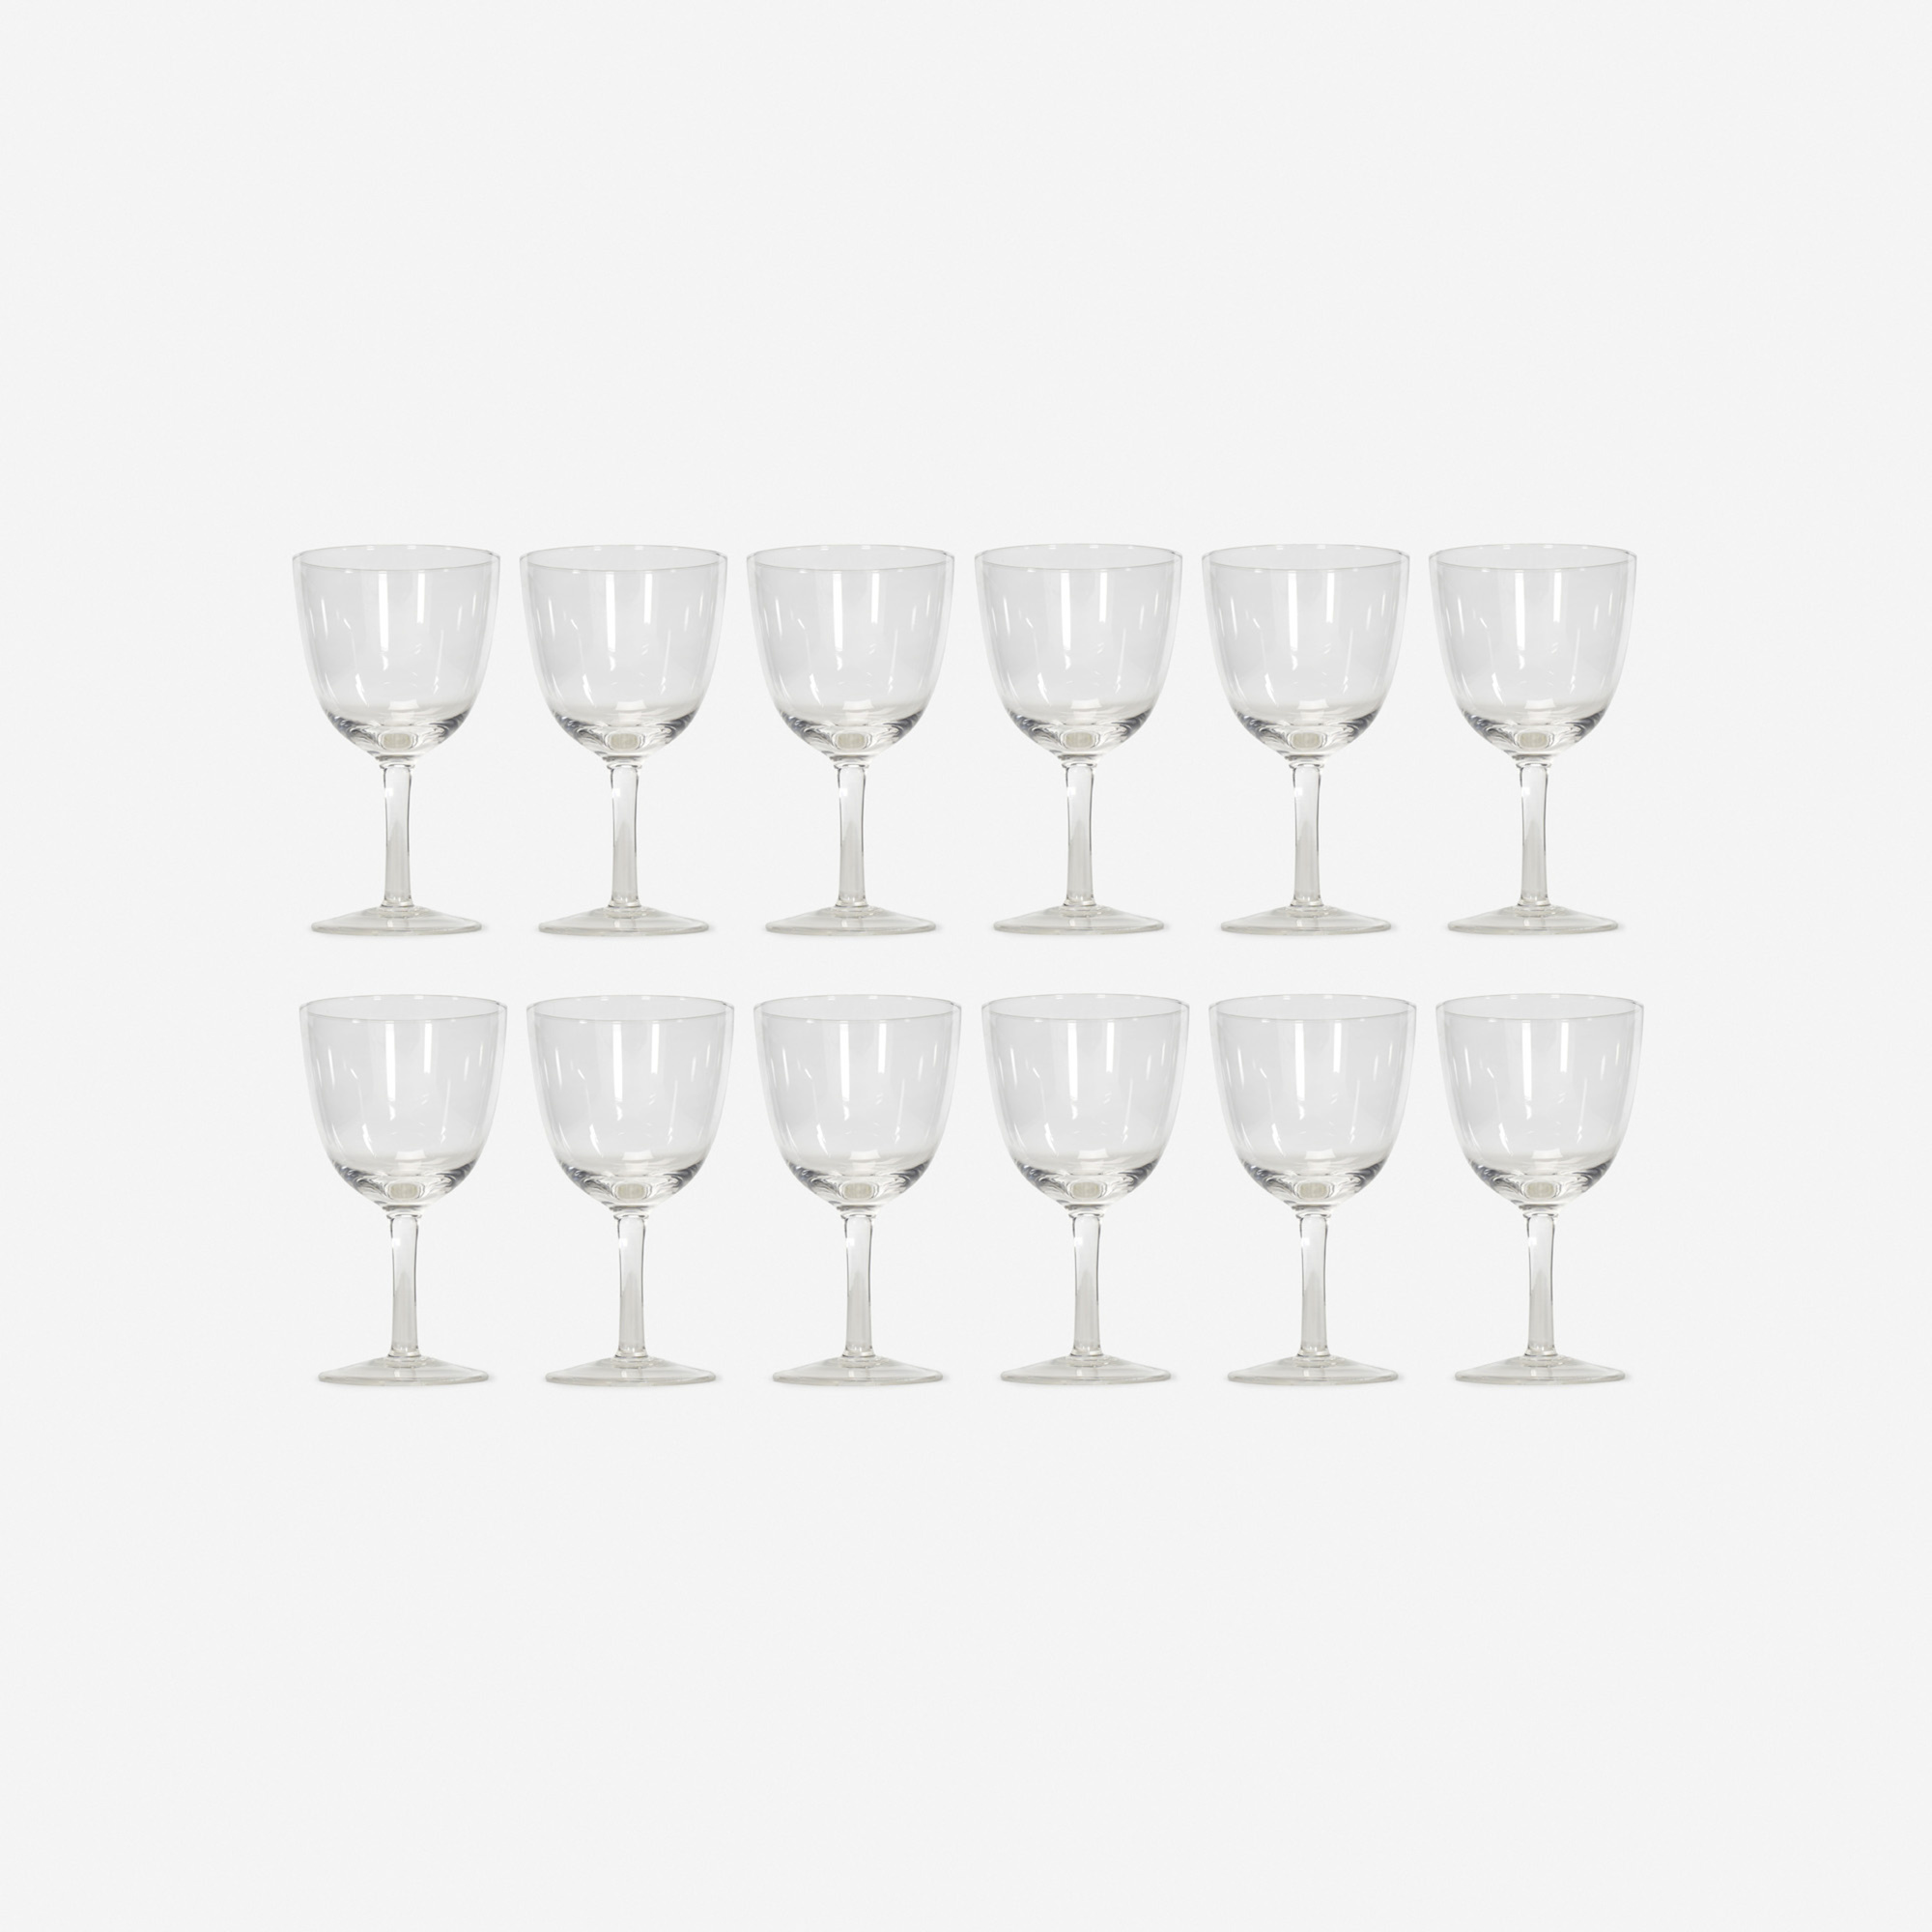 317: Garth and Ada Louise Huxtable / Water glasses from The Four Seasons, set of twelve (1 of 1)